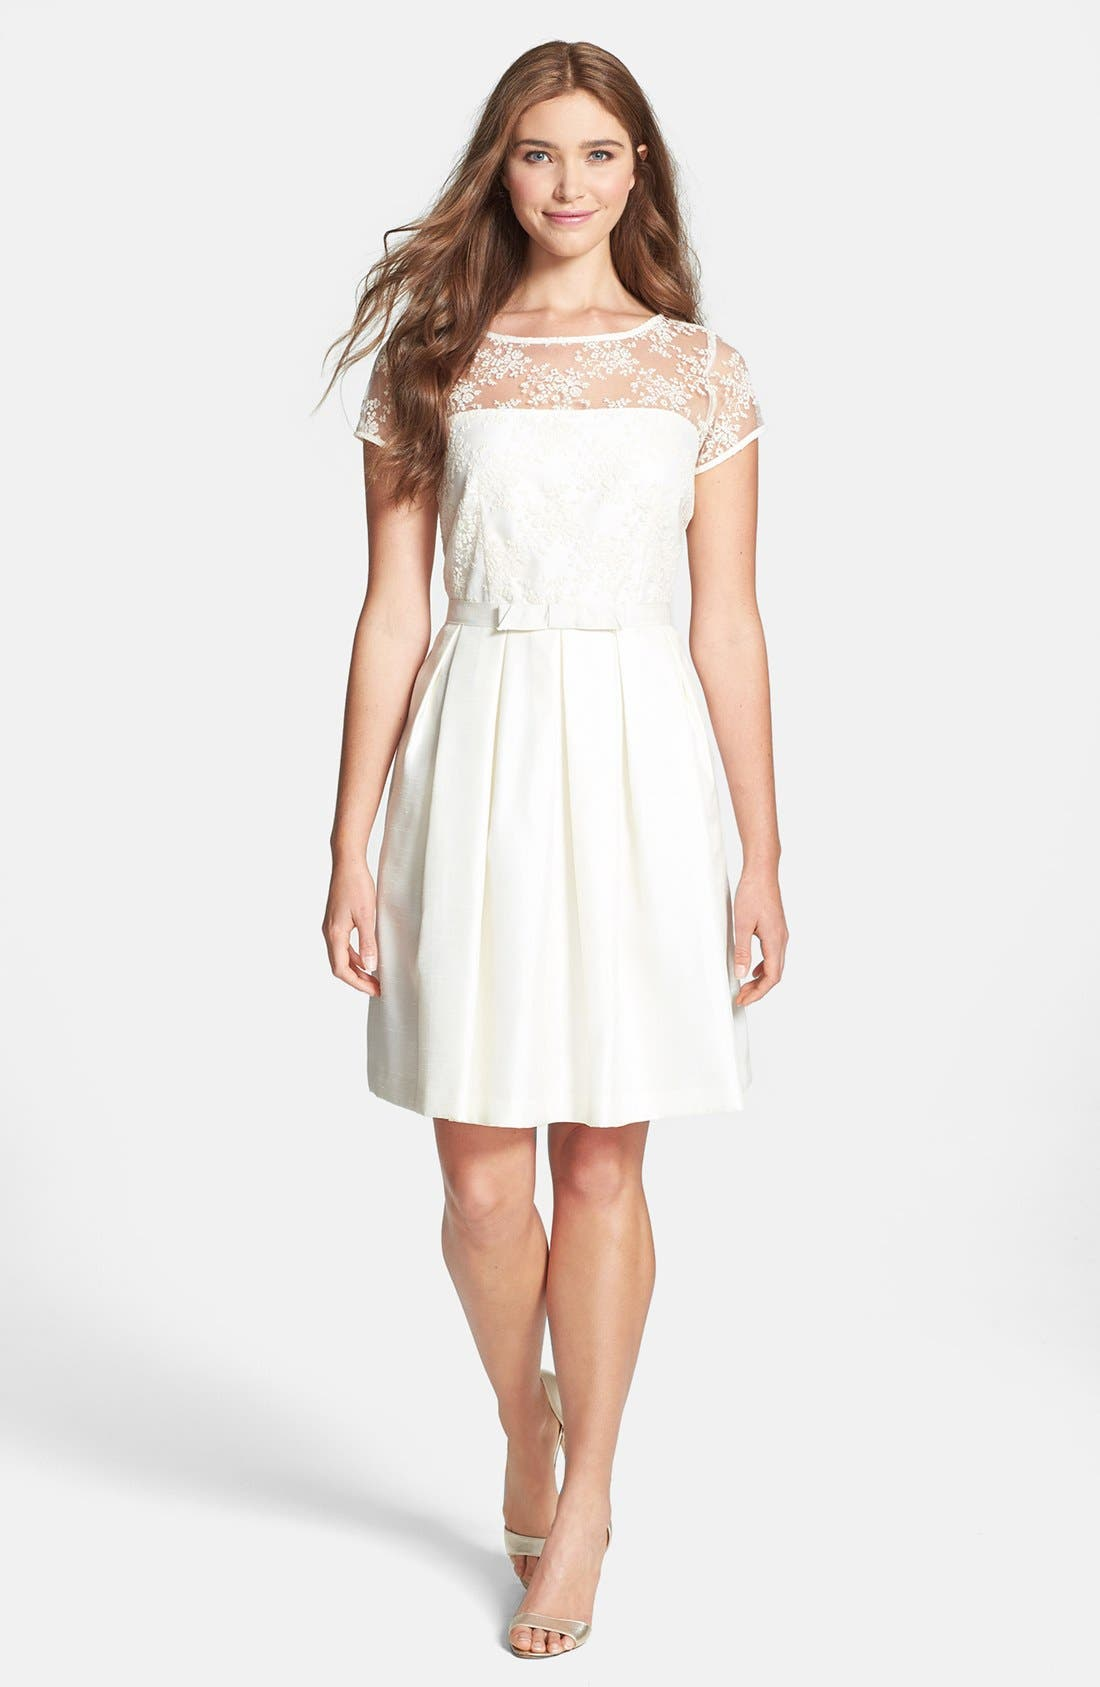 Main Image - Taylor Dresses Lace Bodice Shantung Fit & Flare Dress